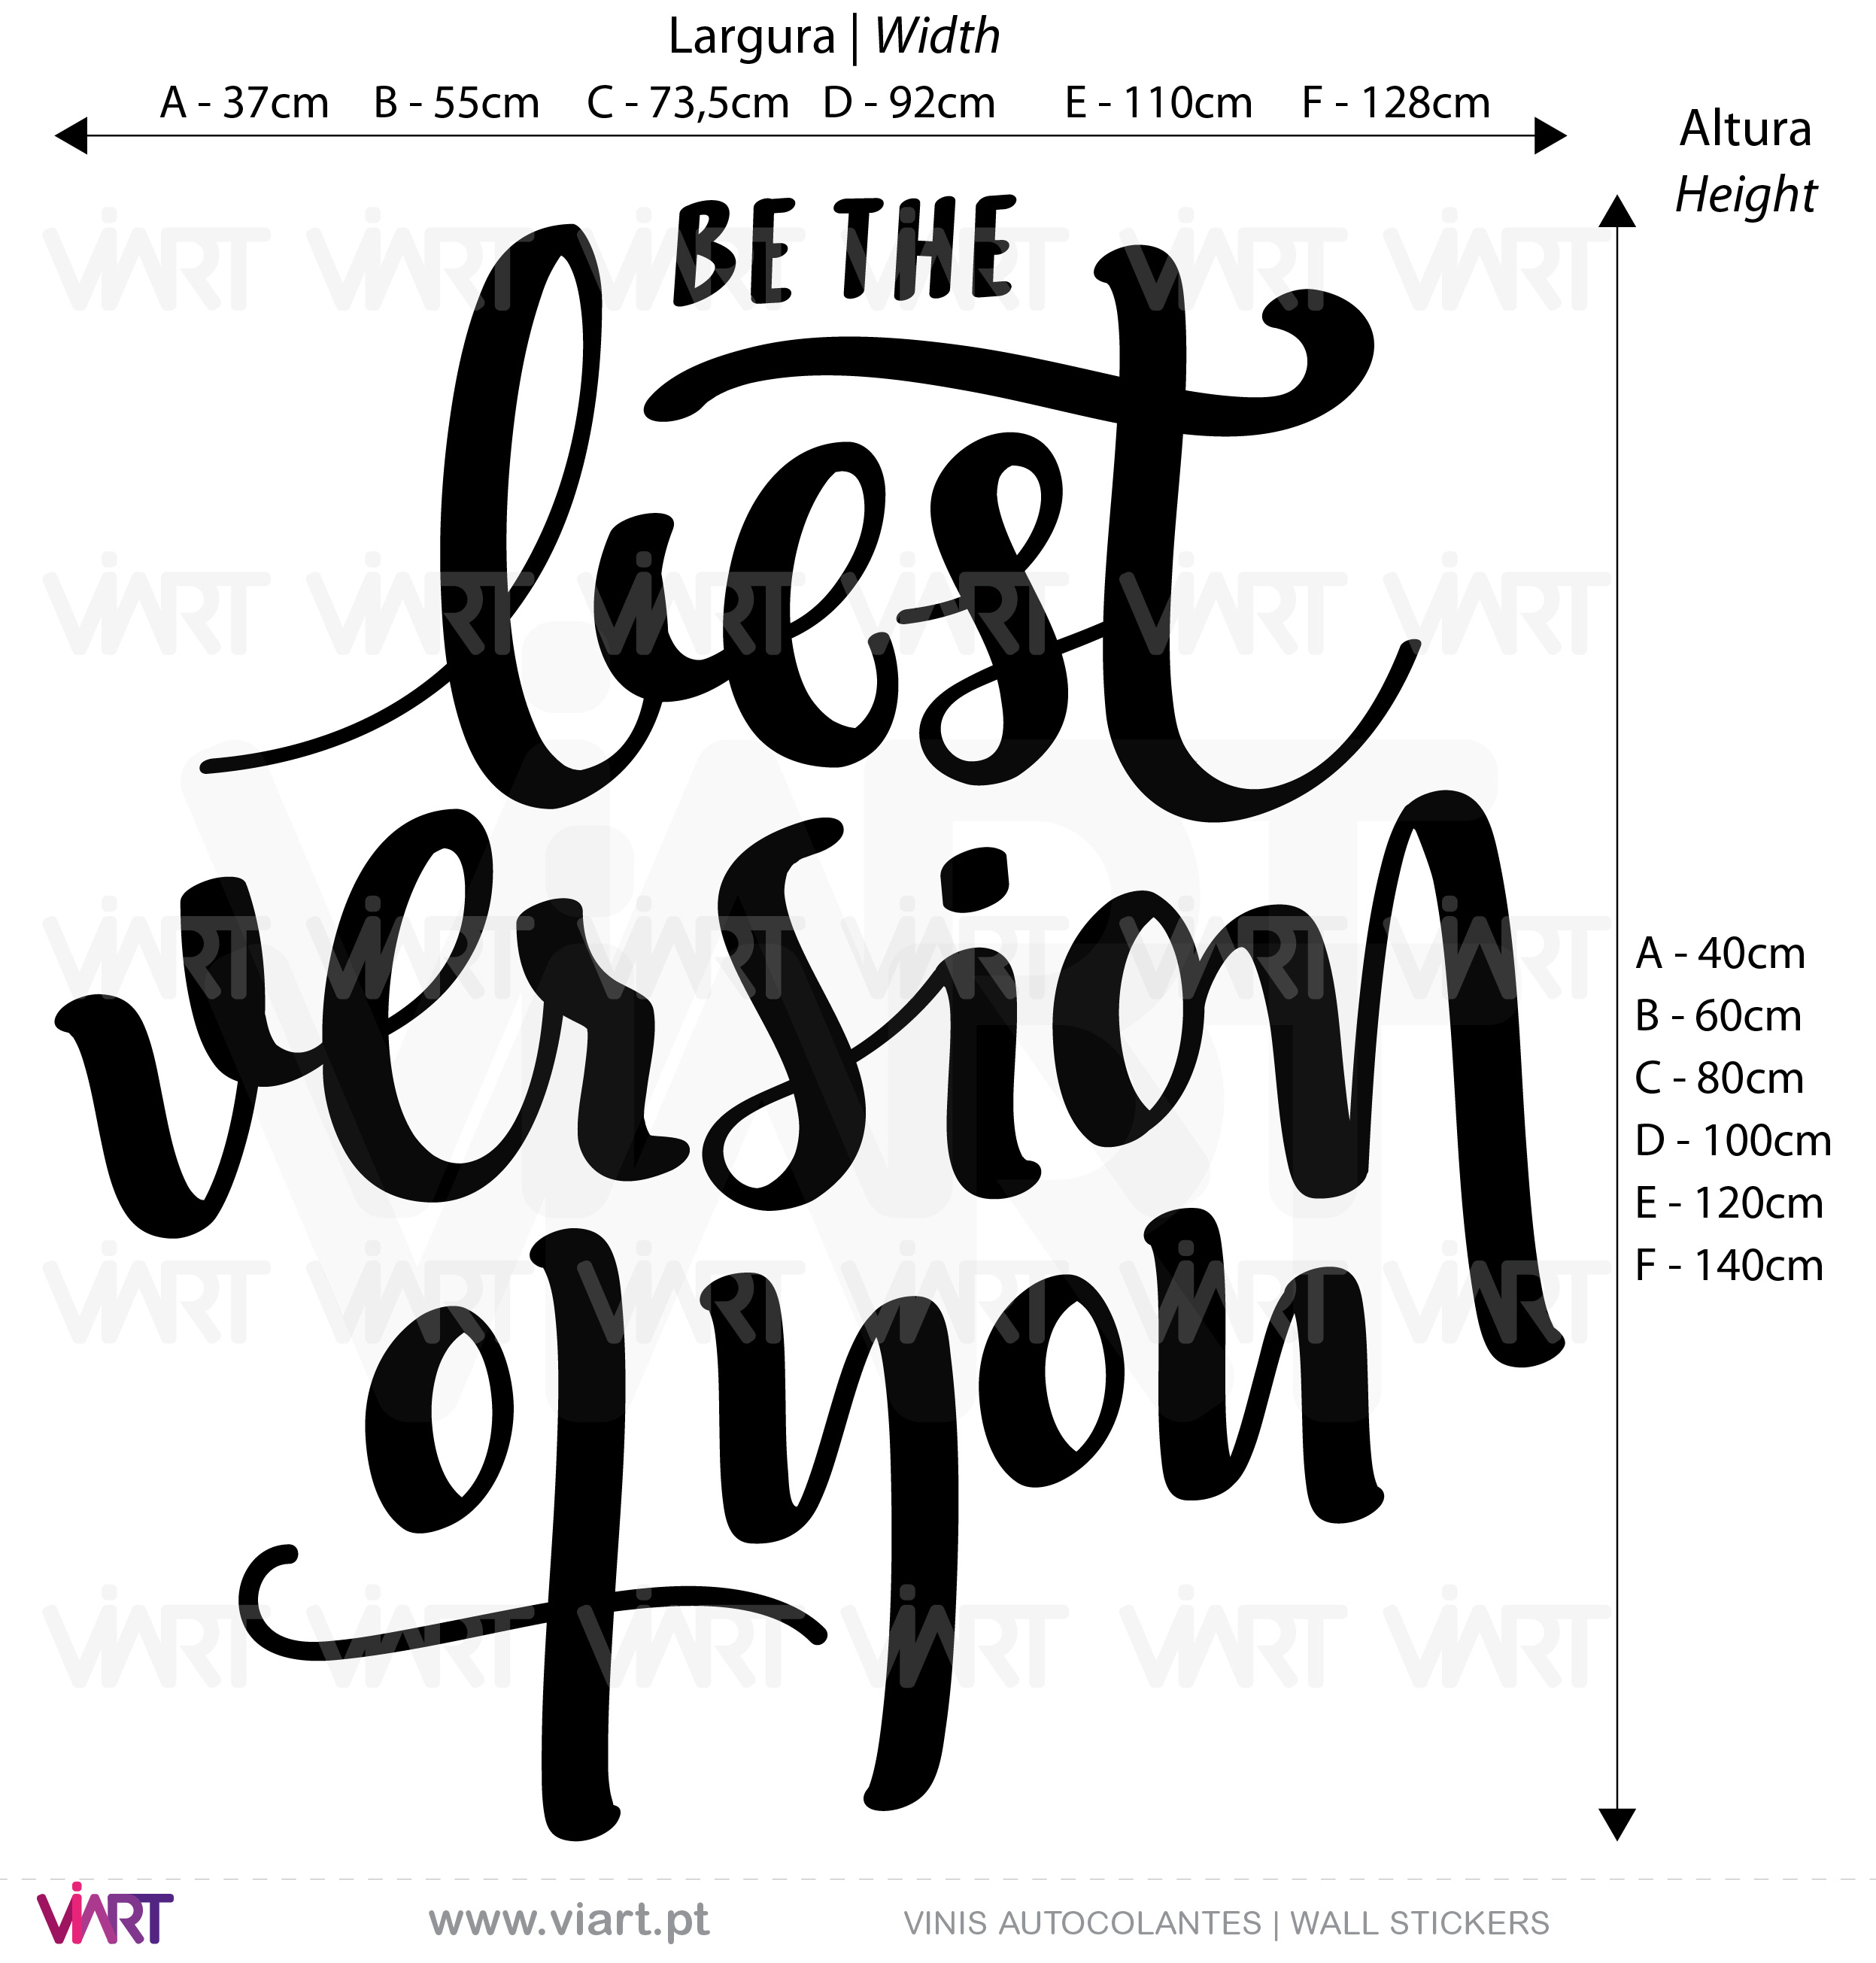 Be the best version of you - Wall Stickers - Decals